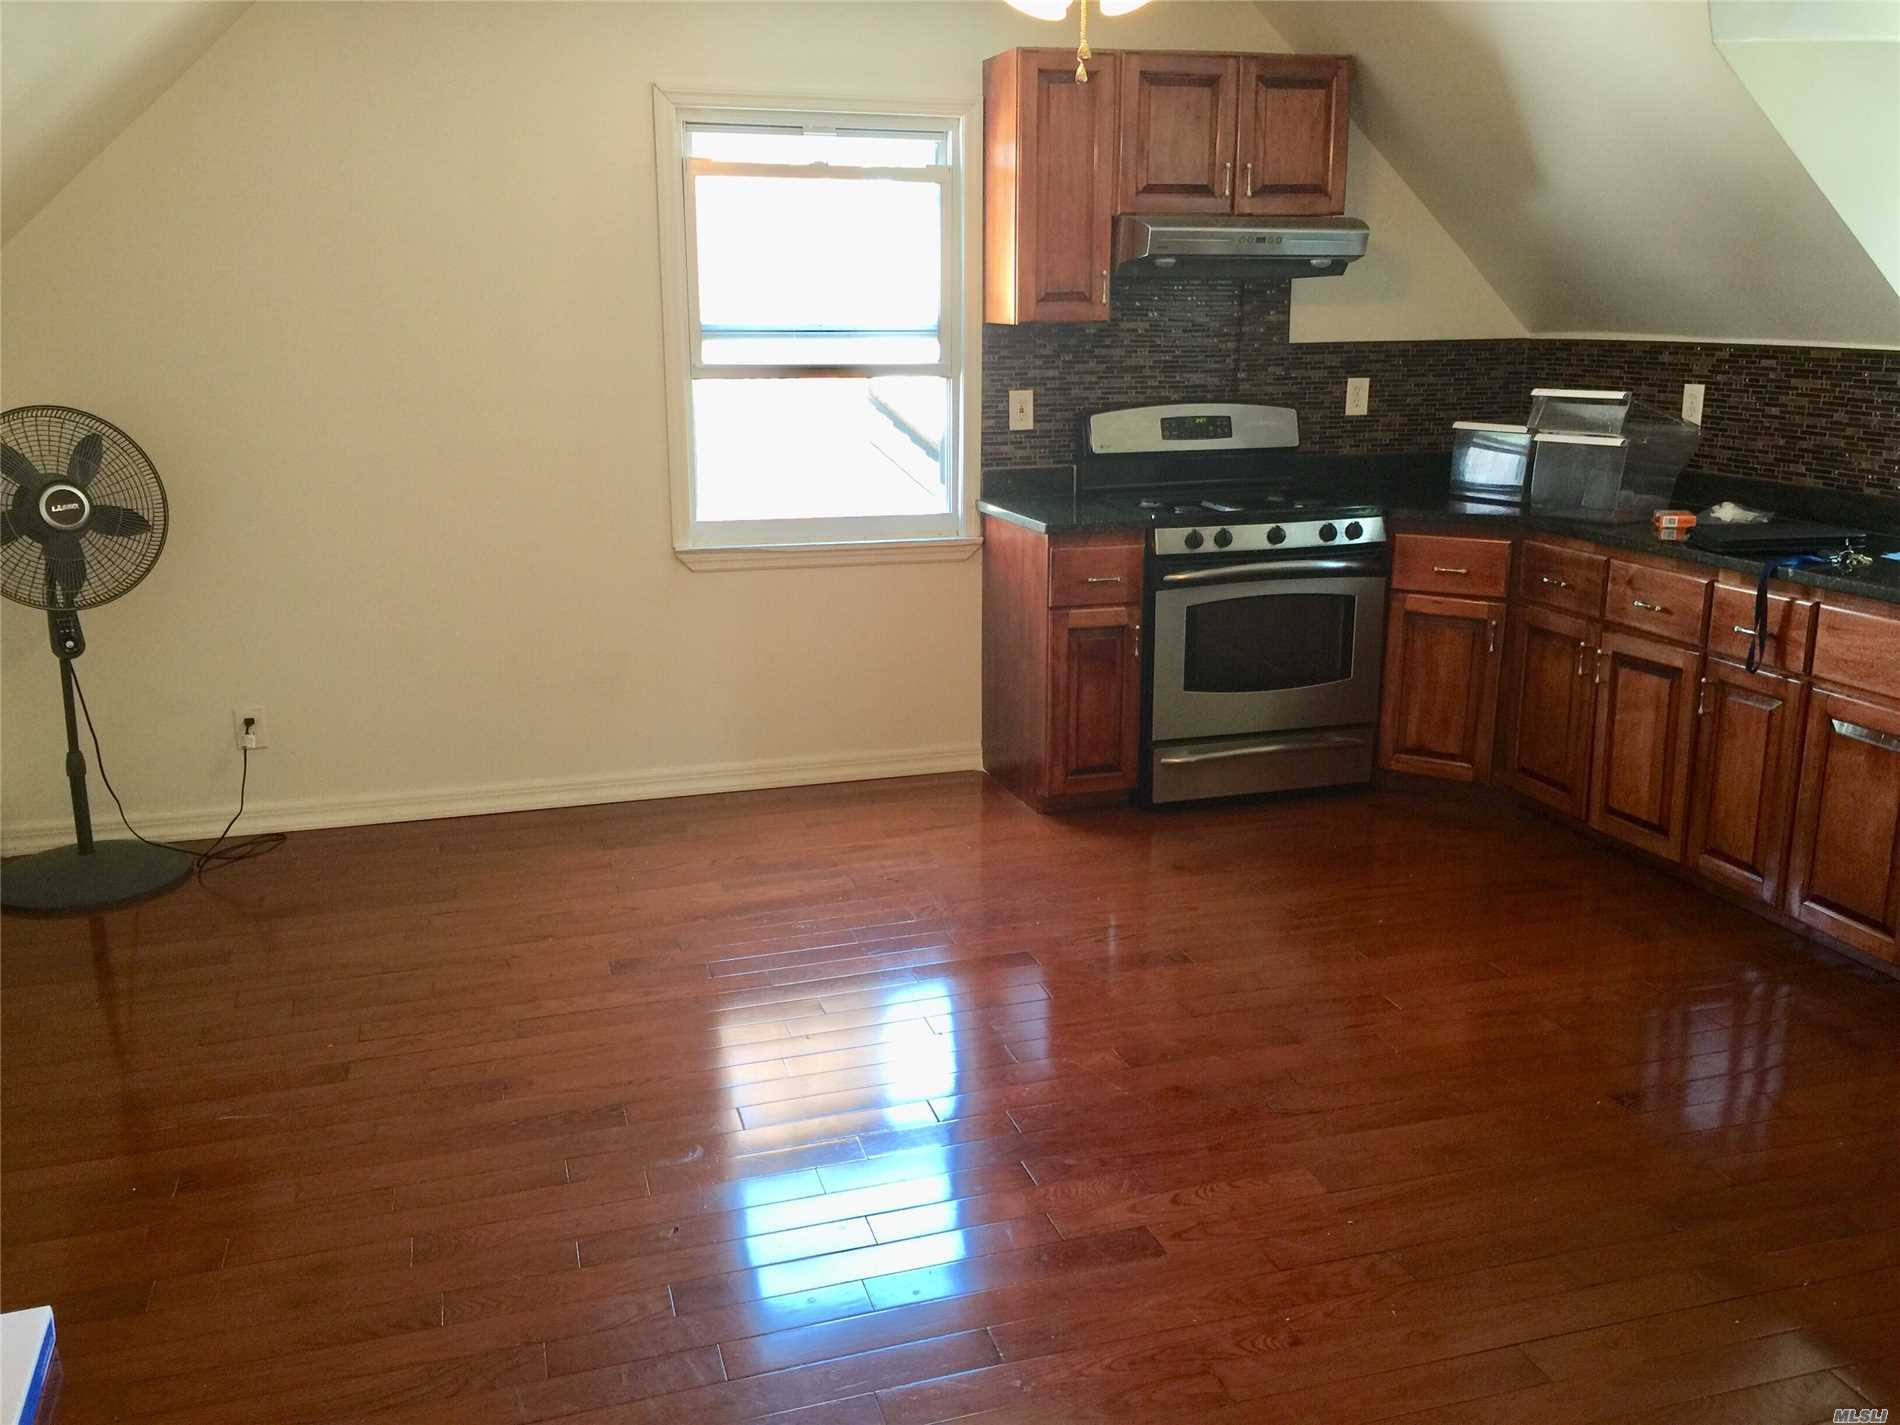 Location Location Location Mint Two Bedrooms Apt With Stainless Steel Appliances Granite Counter Tops And Hard Wood Floors 3 Blocks From The A Train Minutes From Airport. This Wont Last Hurry.